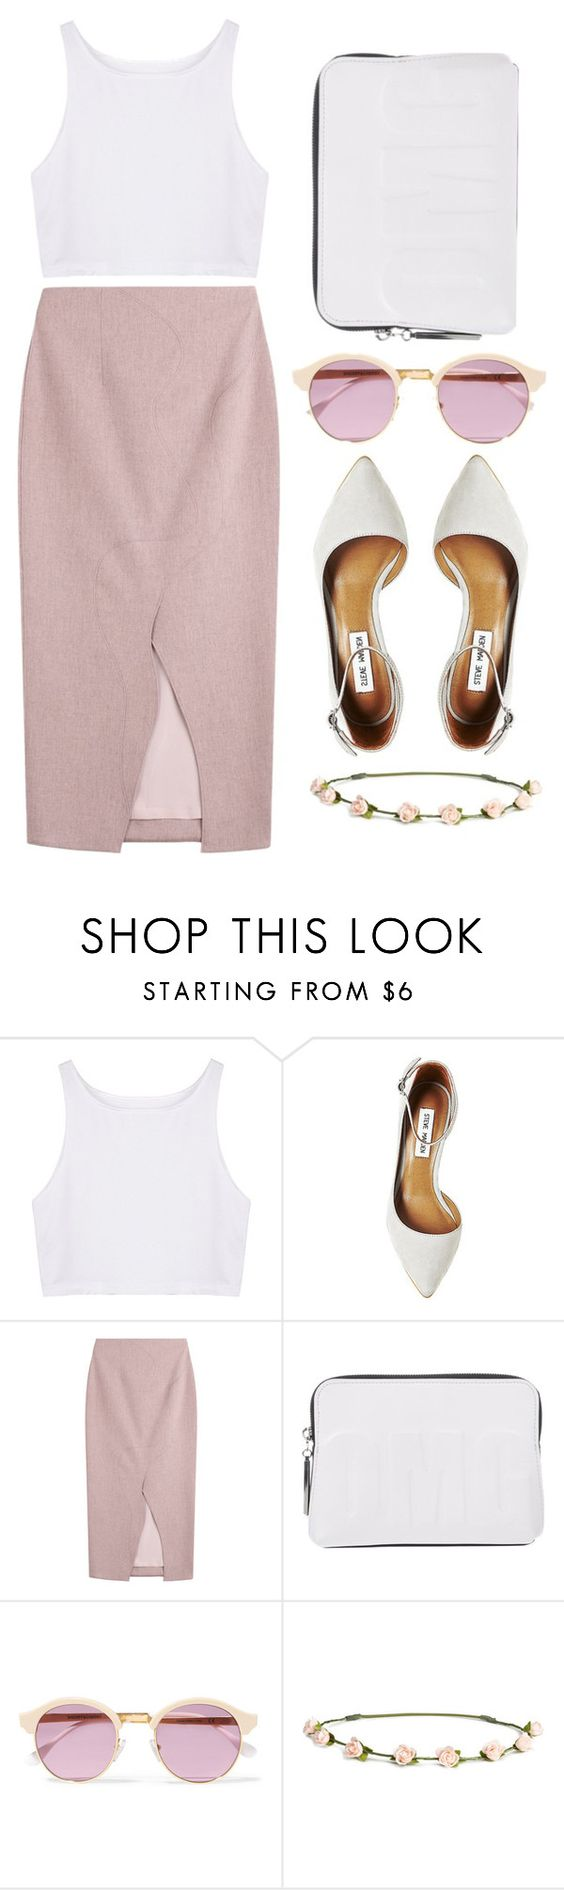 """""""Plainsong"""" by bluis-h ❤ liked on Polyvore featuring Steve Madden, Roksanda, 3.1 Phillip Lim, Sheriff&Cherry and H&M"""